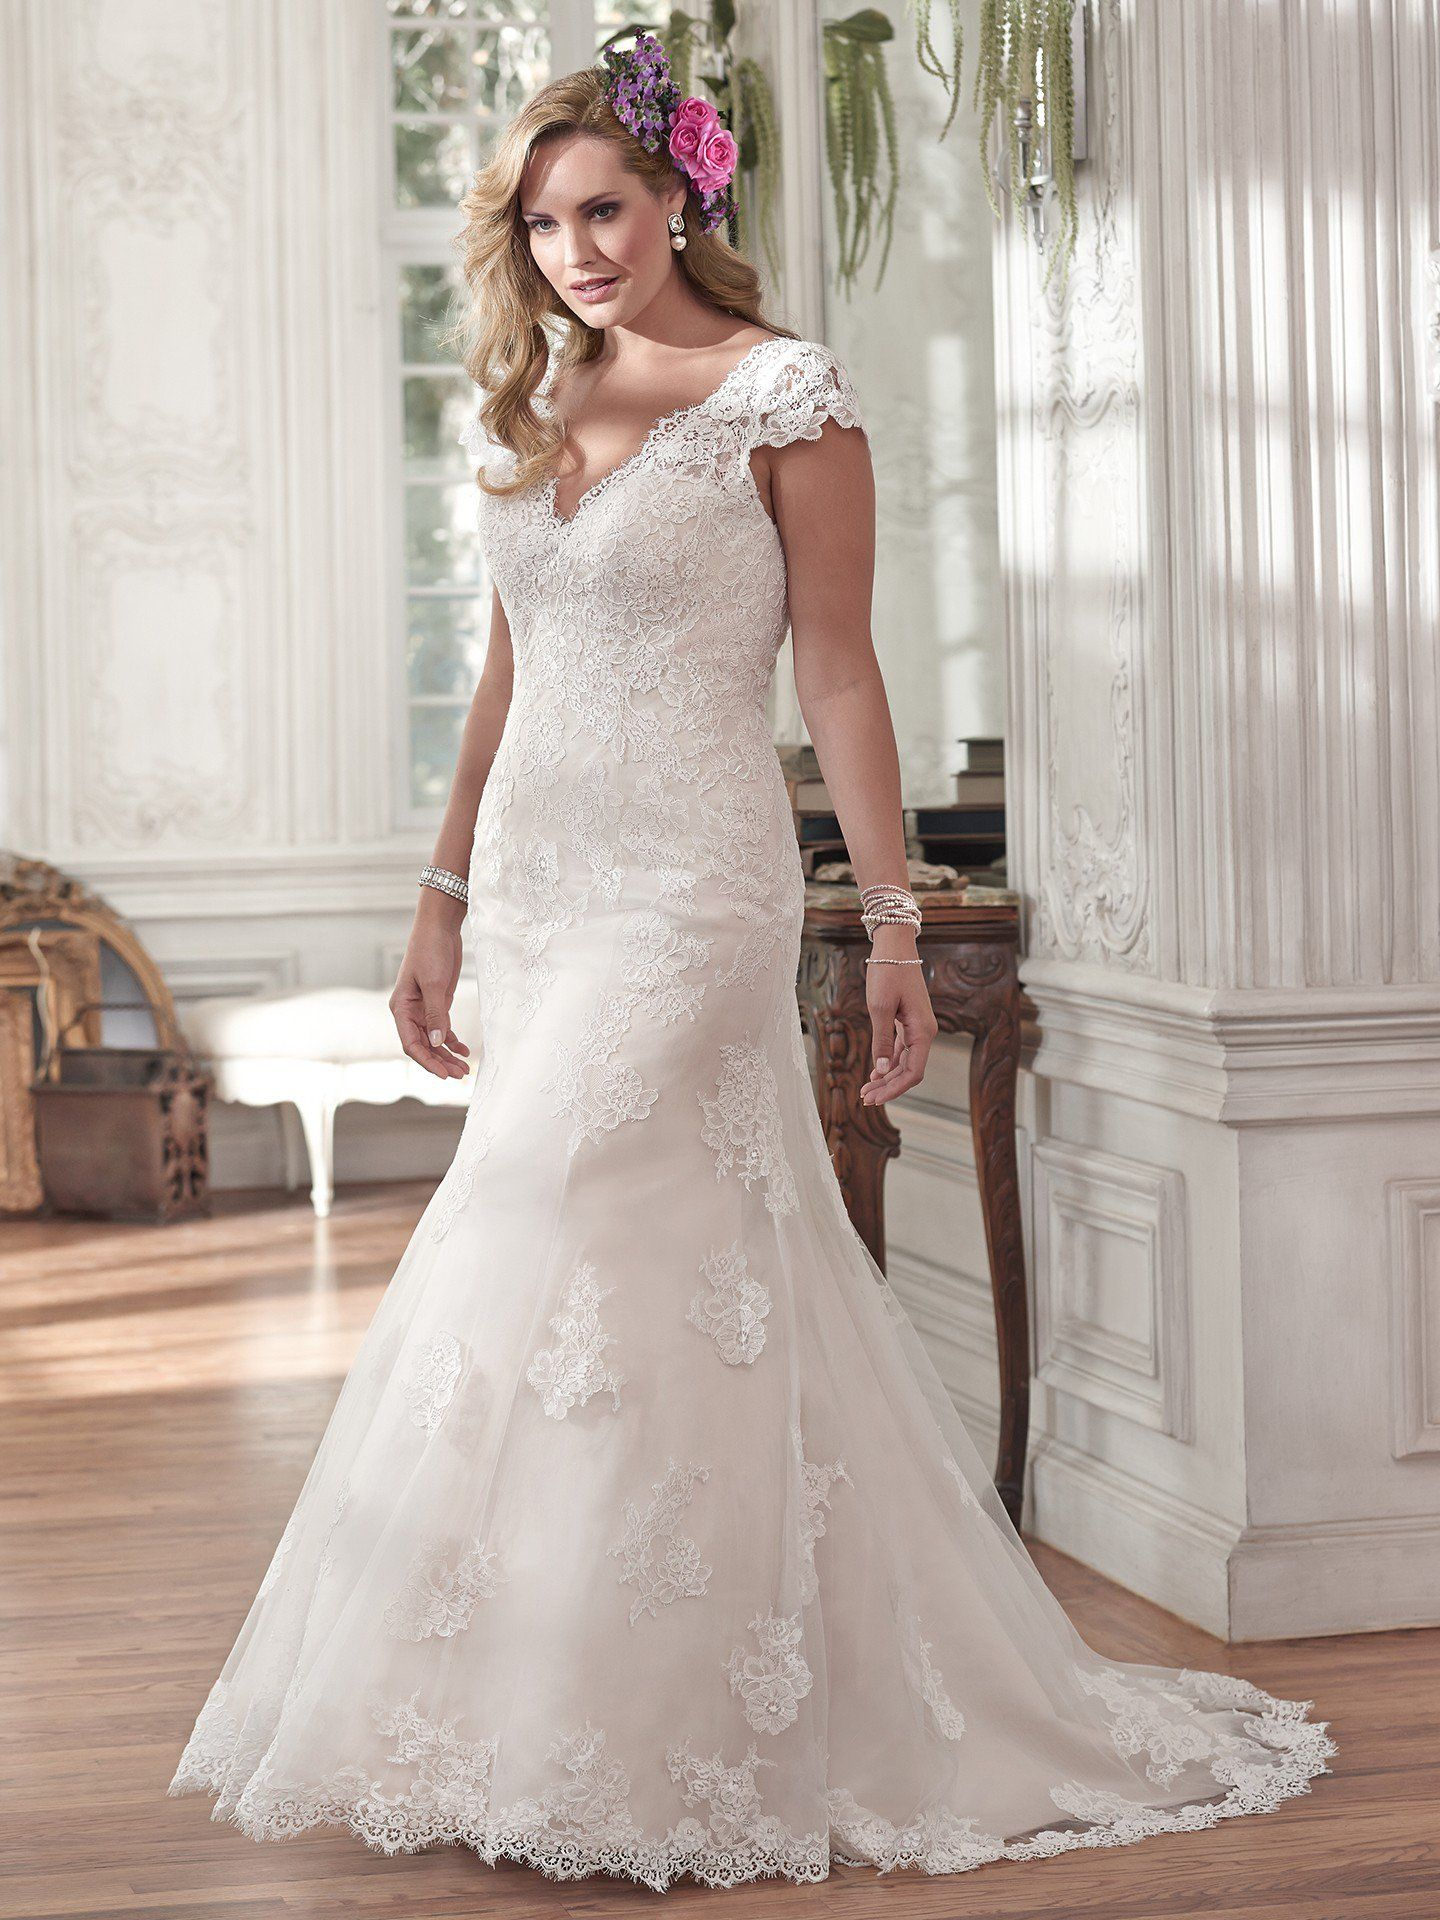 Maggie Sottero Wedding Dresses | Maggie sottero, Ethereal and ...